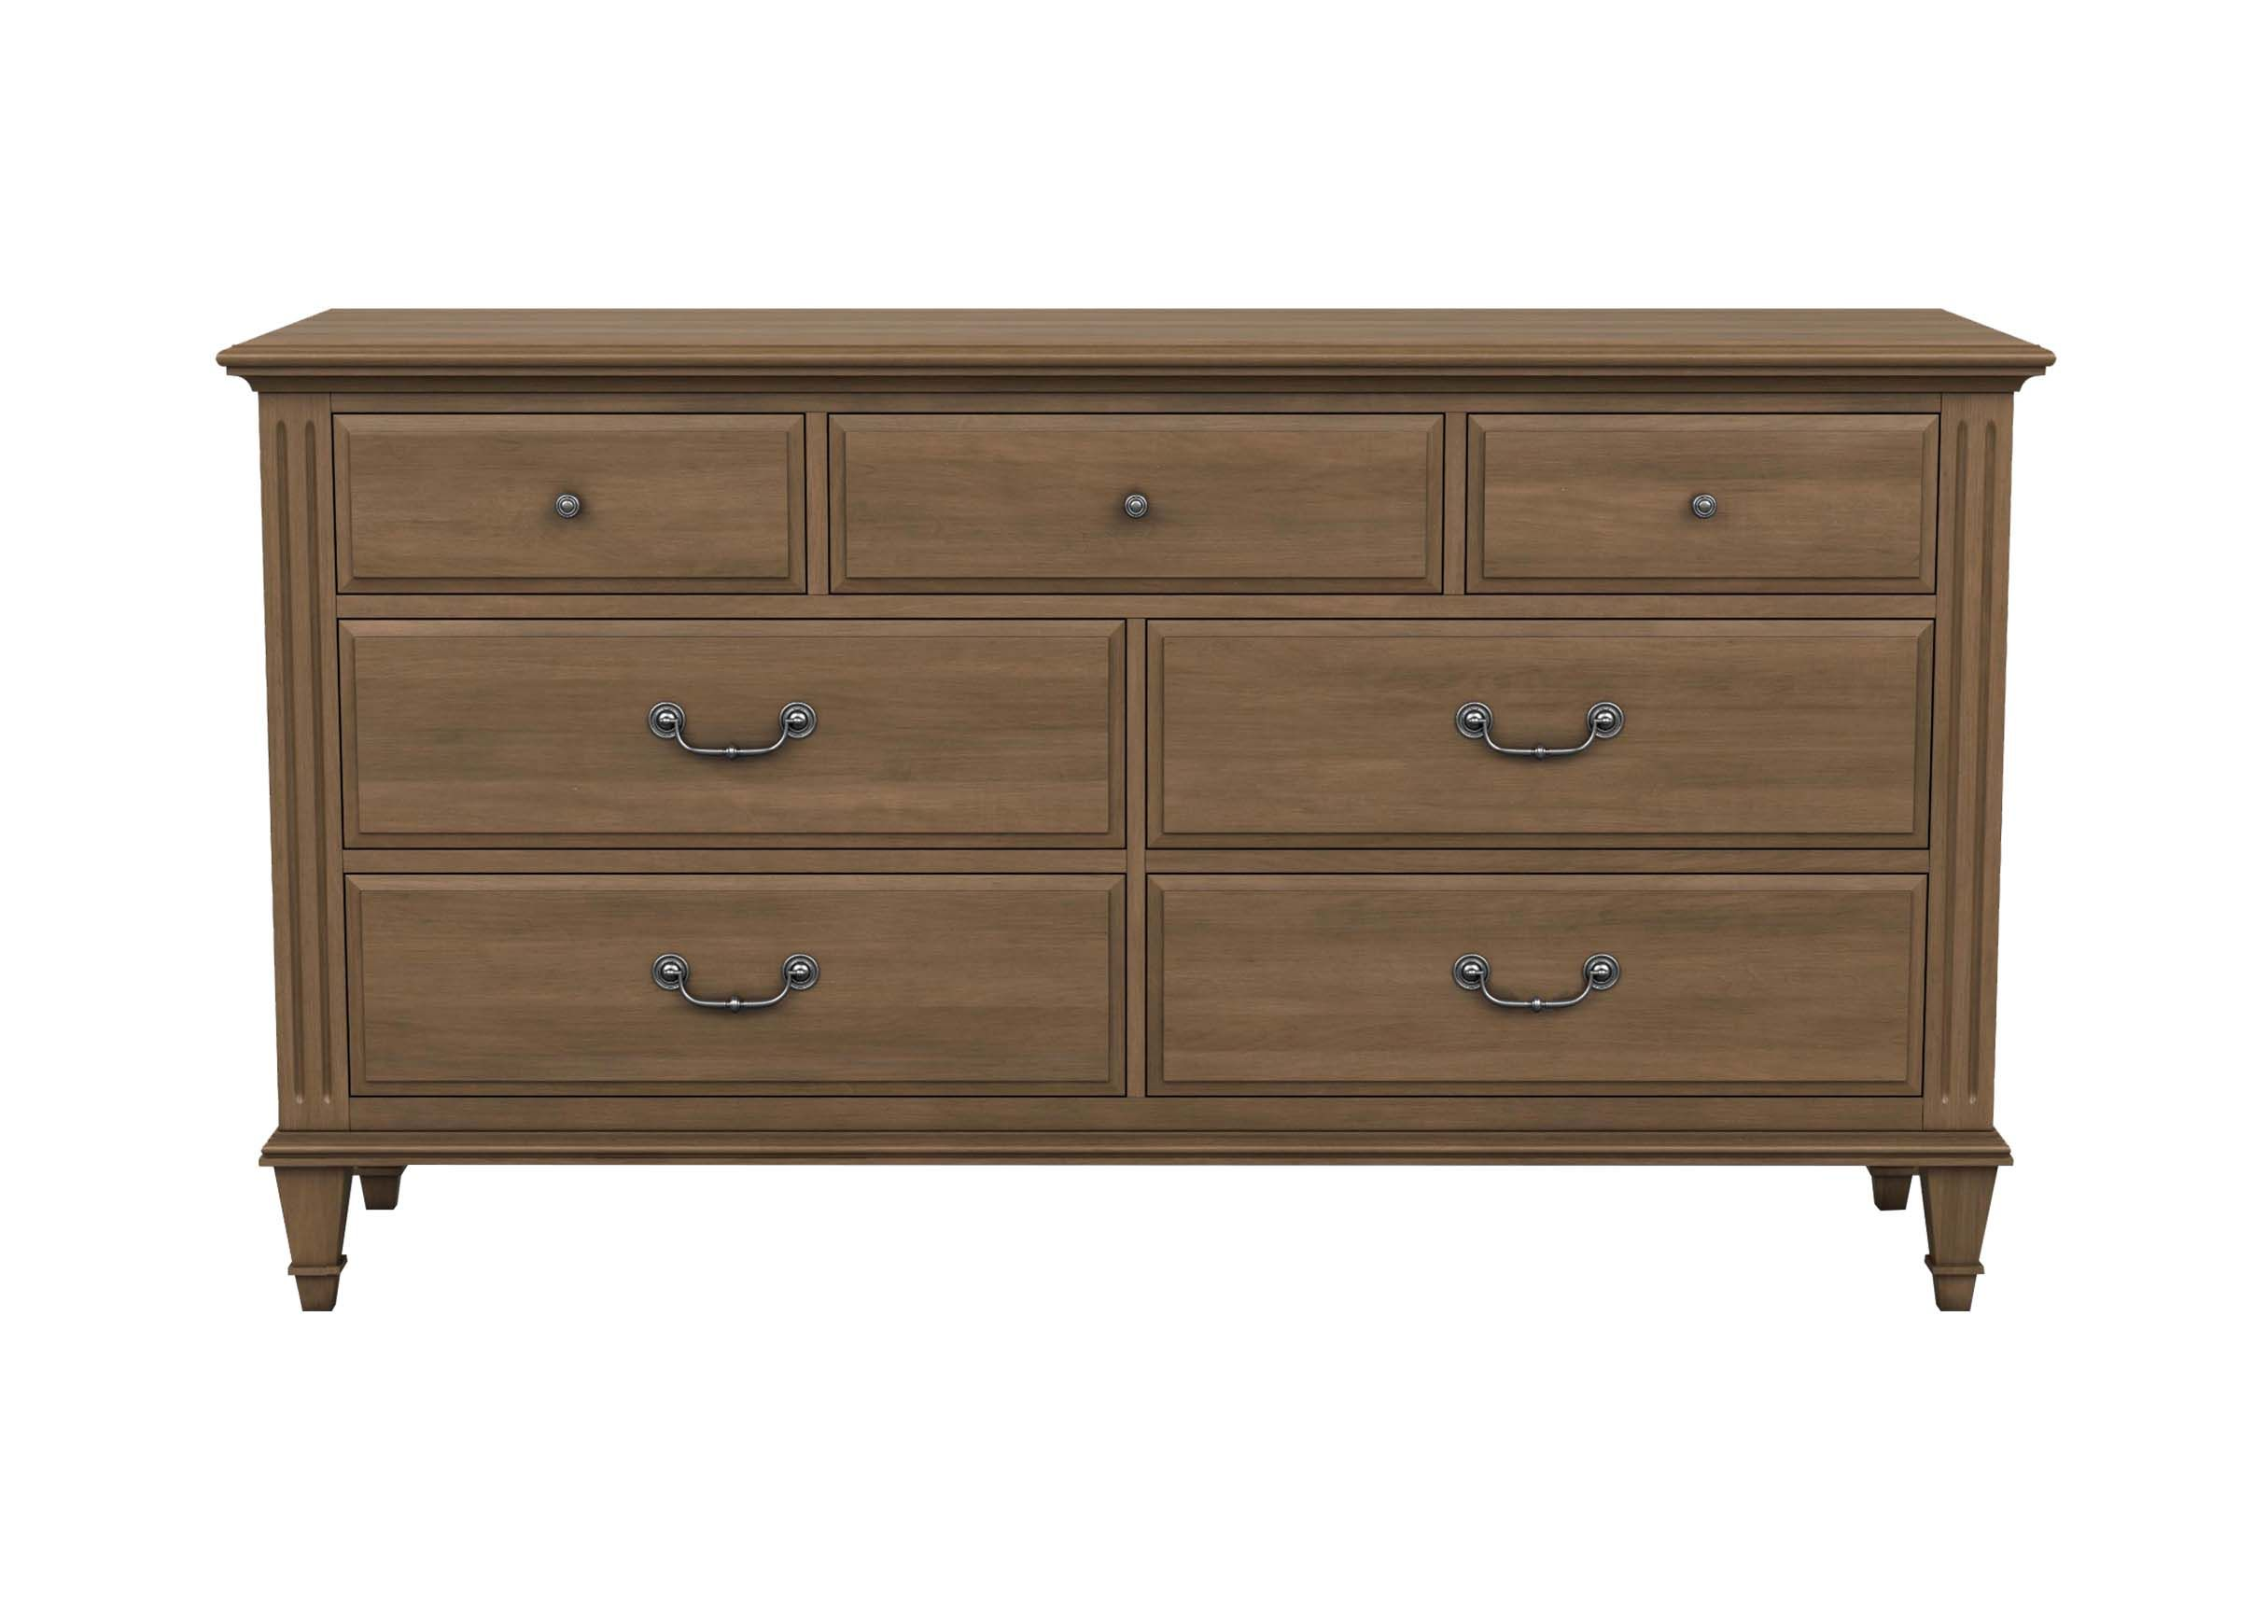 Wonderful Home Likeable Media Chest Bedroom Of Palisades Furnishings ...